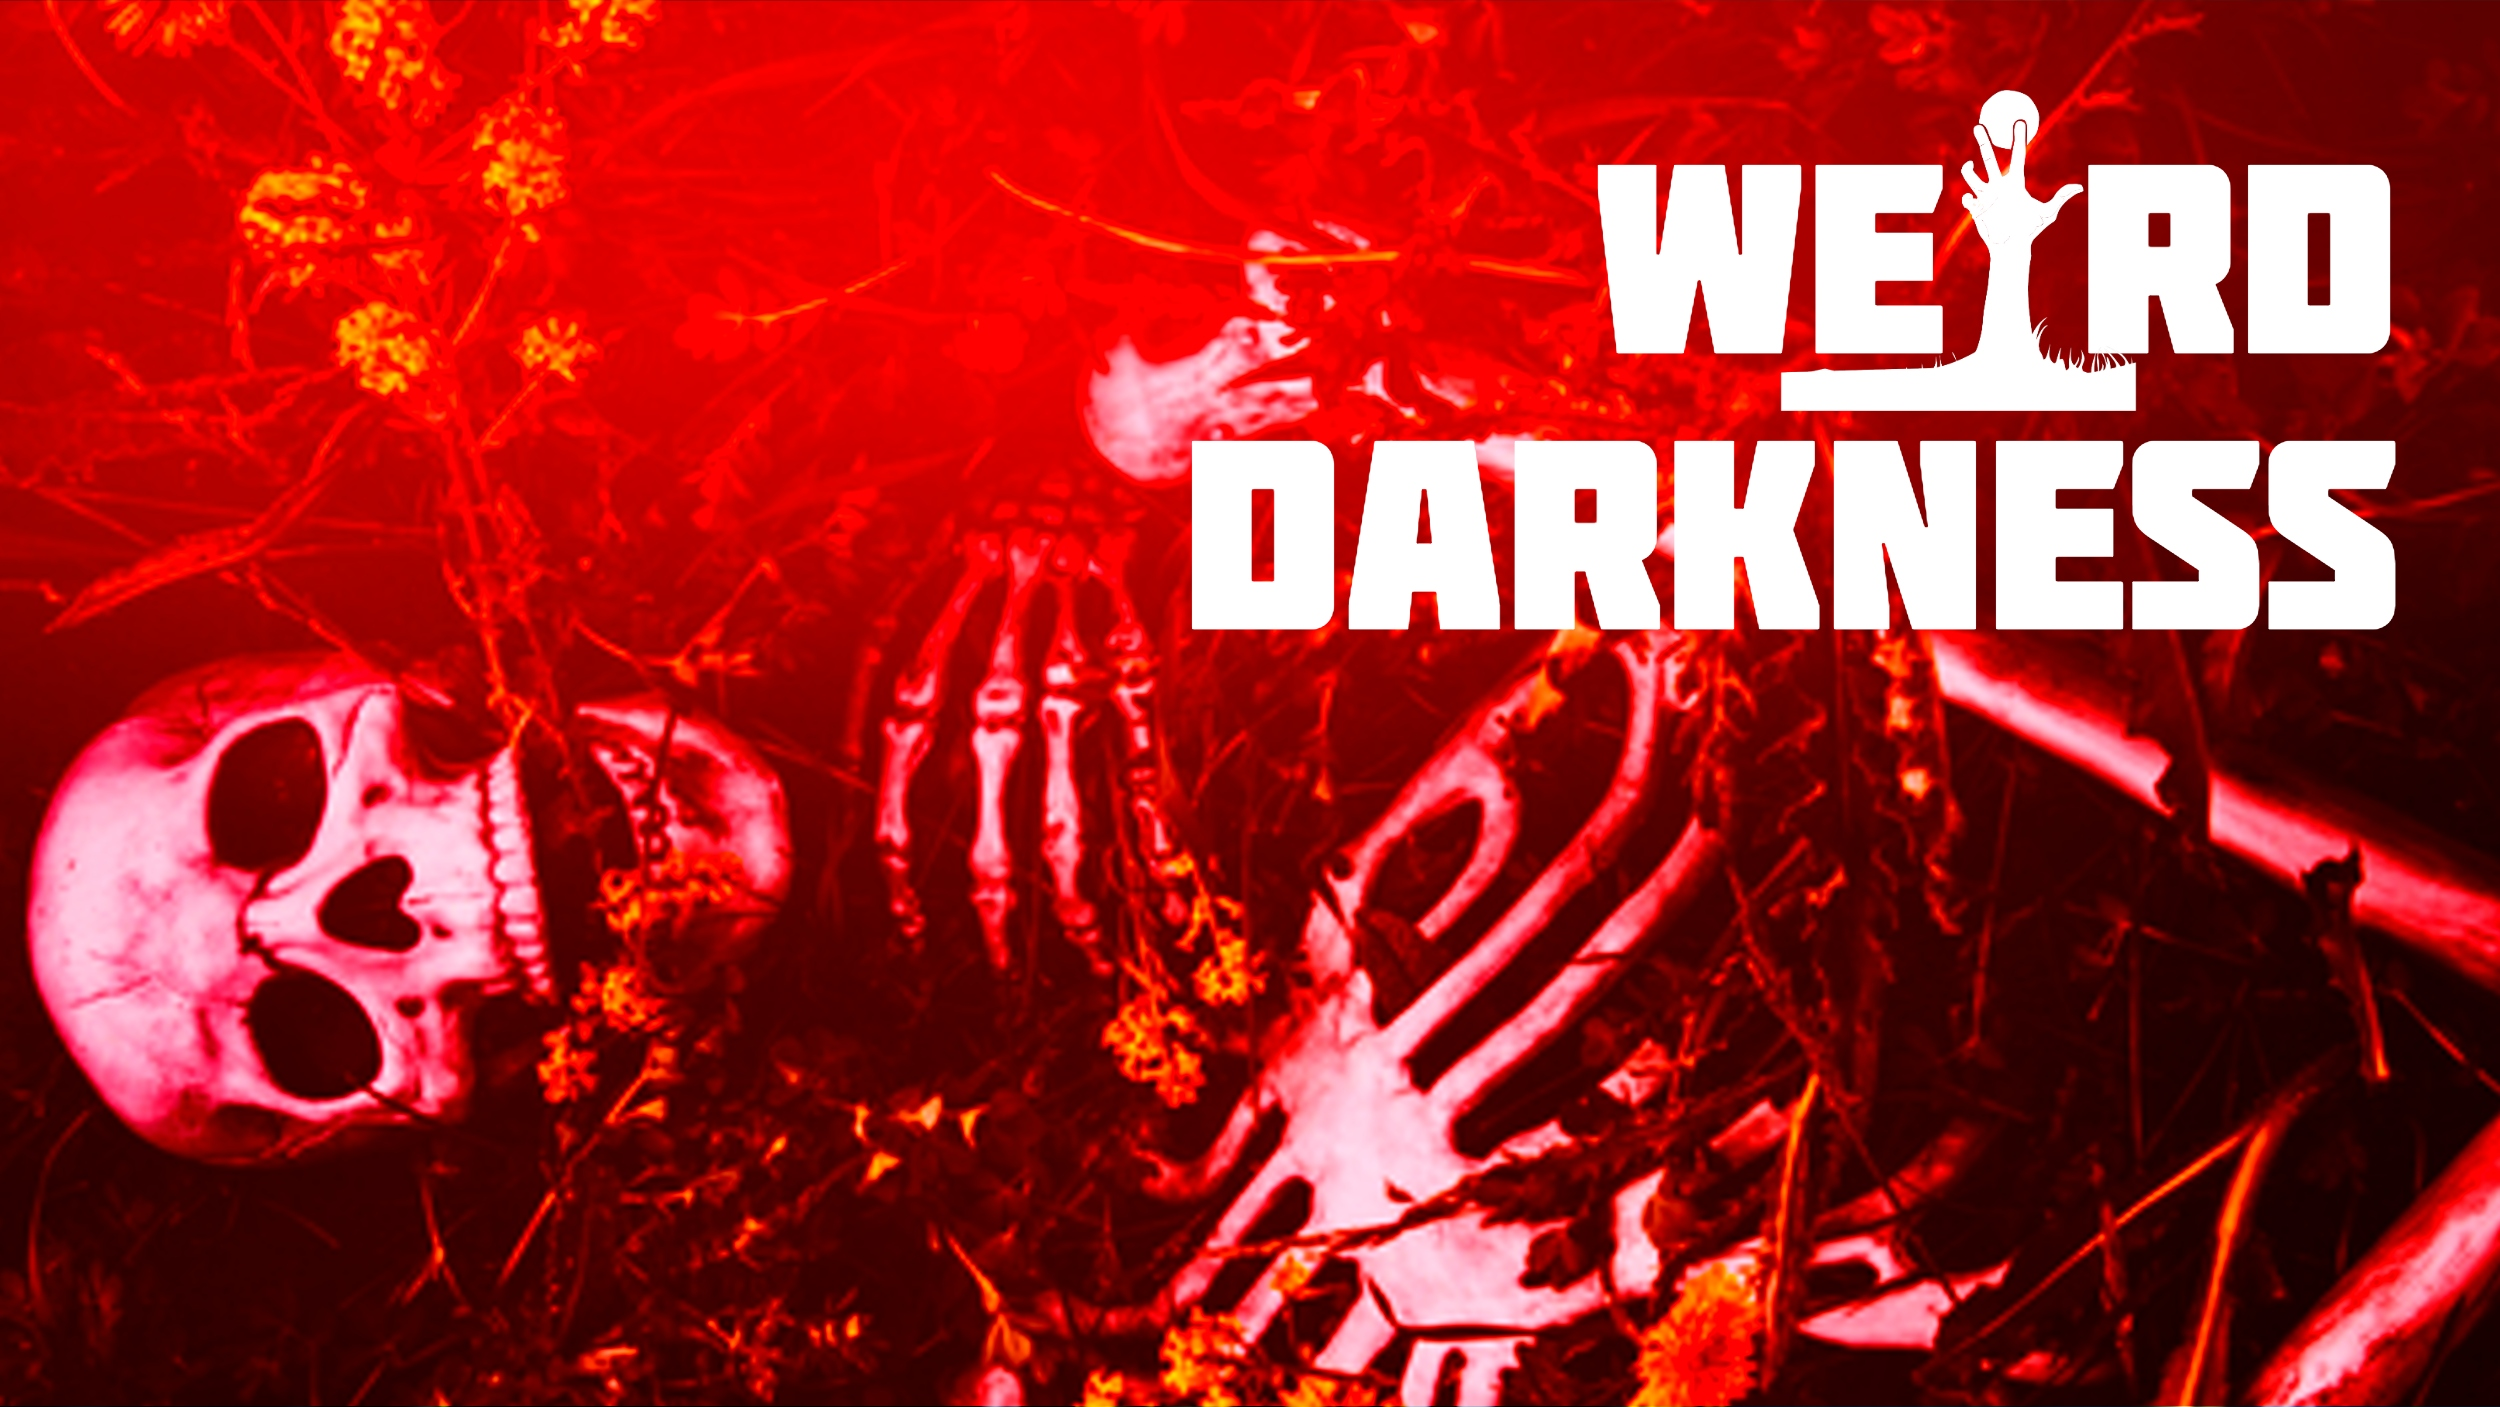 #WeirdDarkness: STRANGE DUMPING GROUNDS and More True, Weird and Dark Stories!